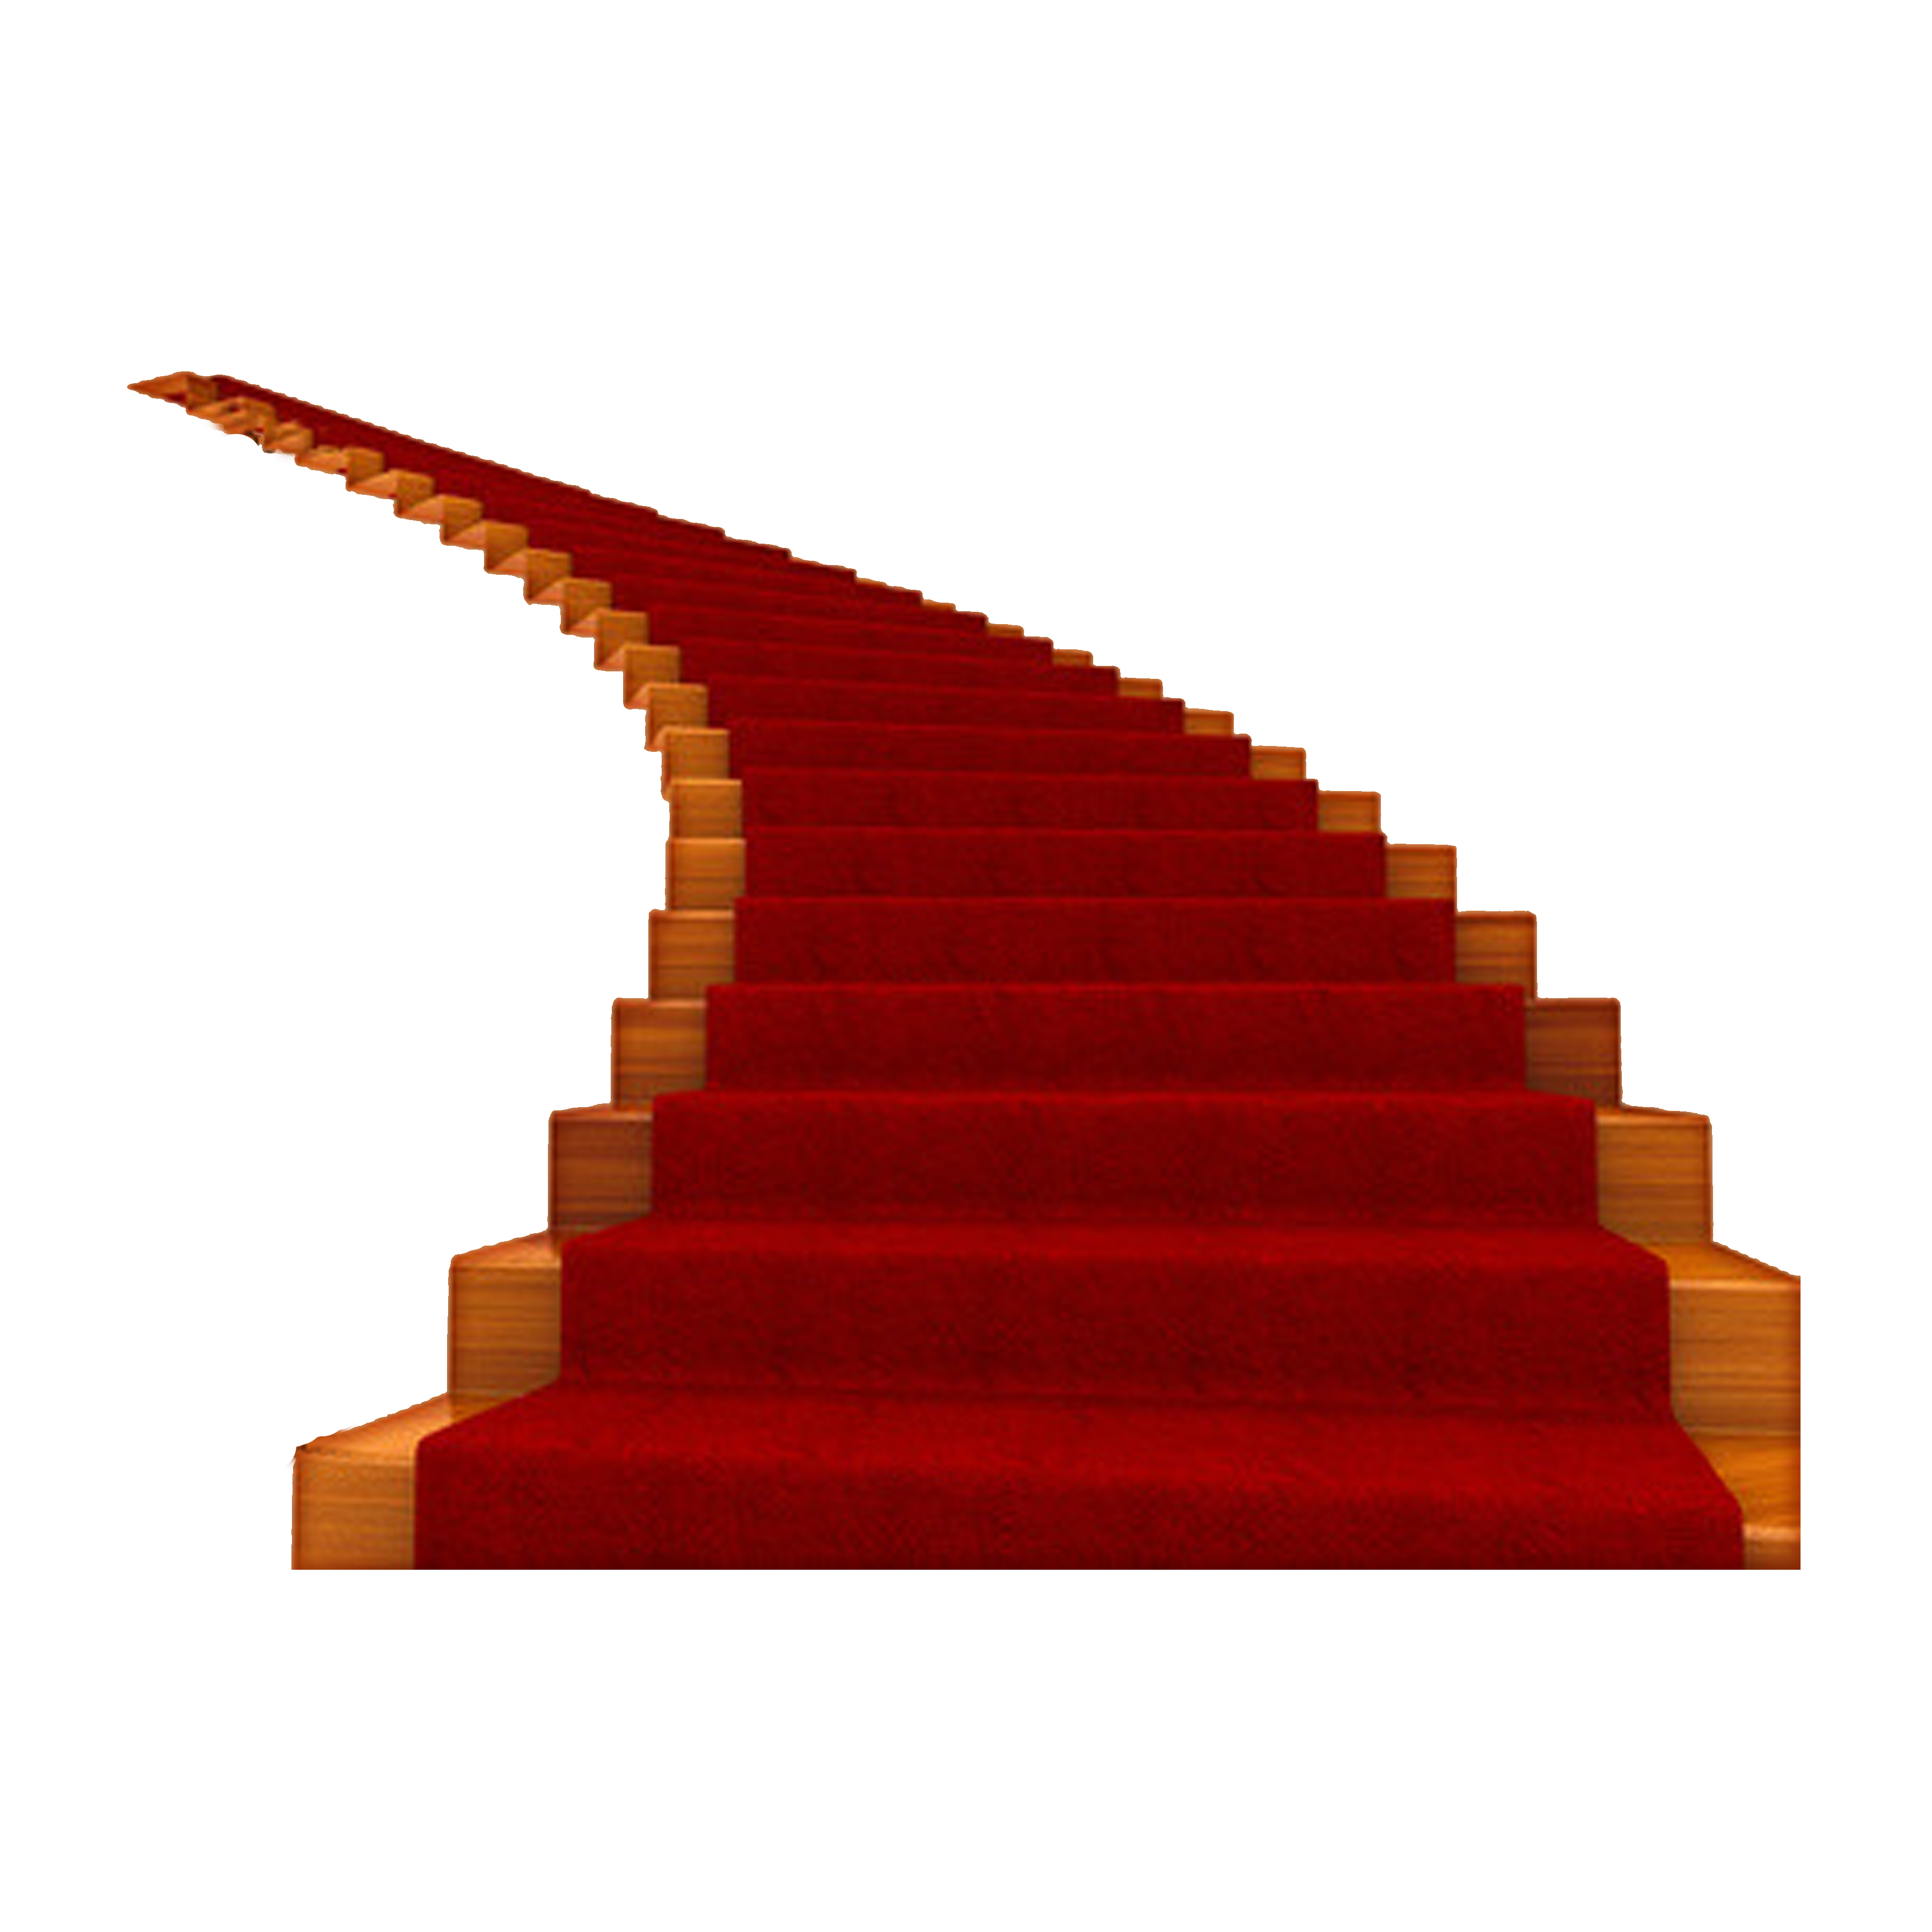 Ladder clipart staircase. Stairs csigalxe pcsu stock